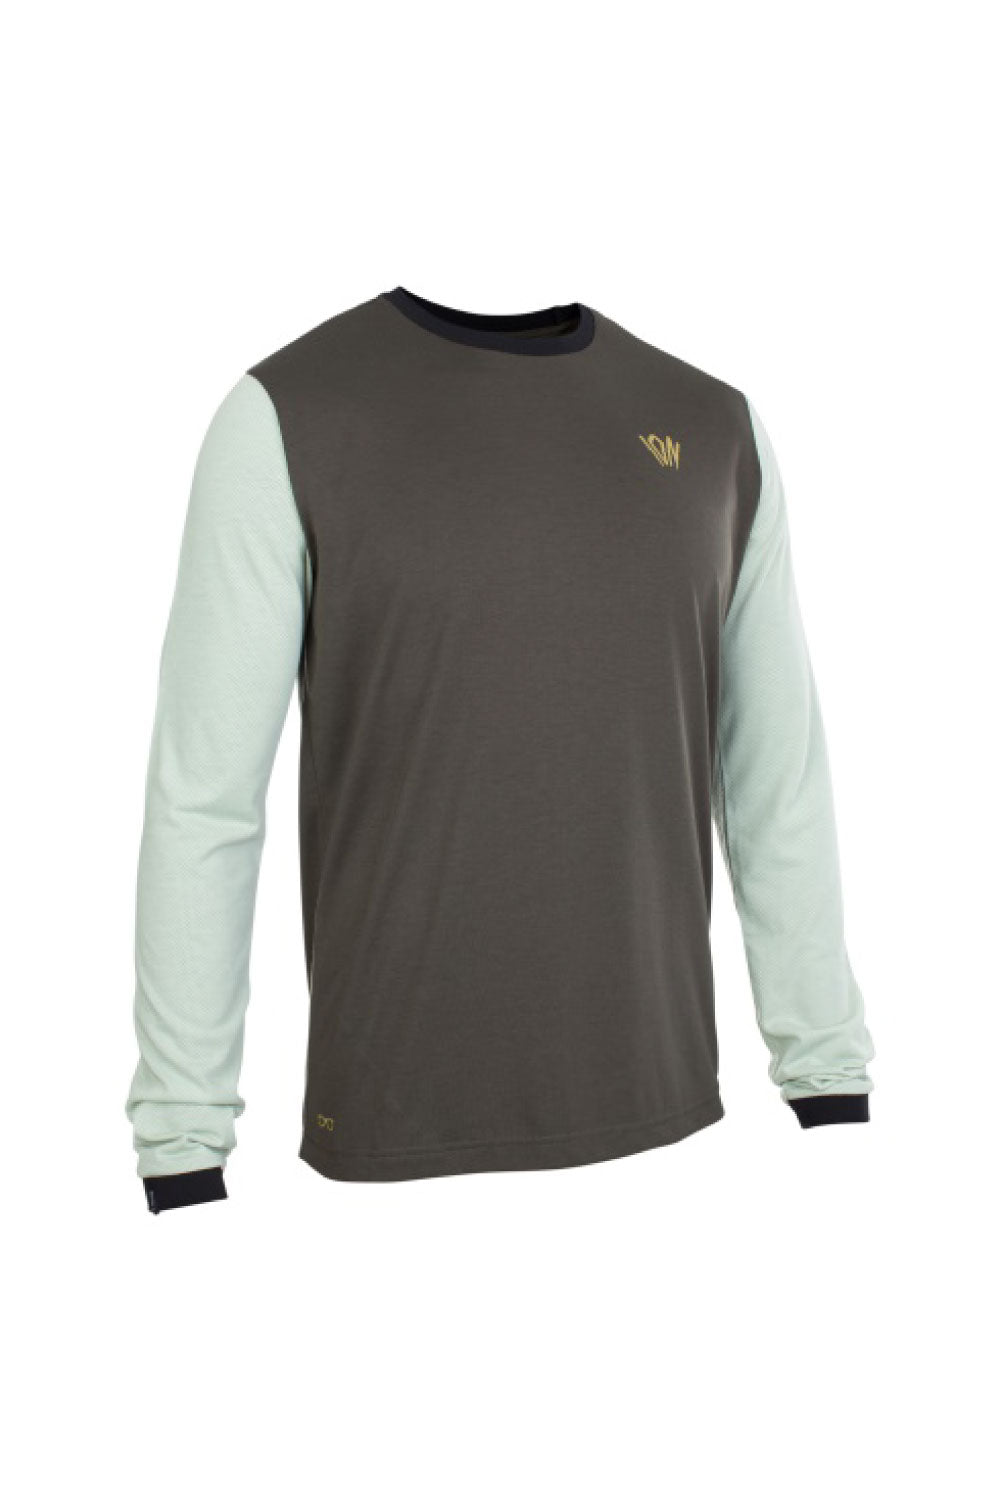 ION Seek AMP Long Sleeve MTB Jersey